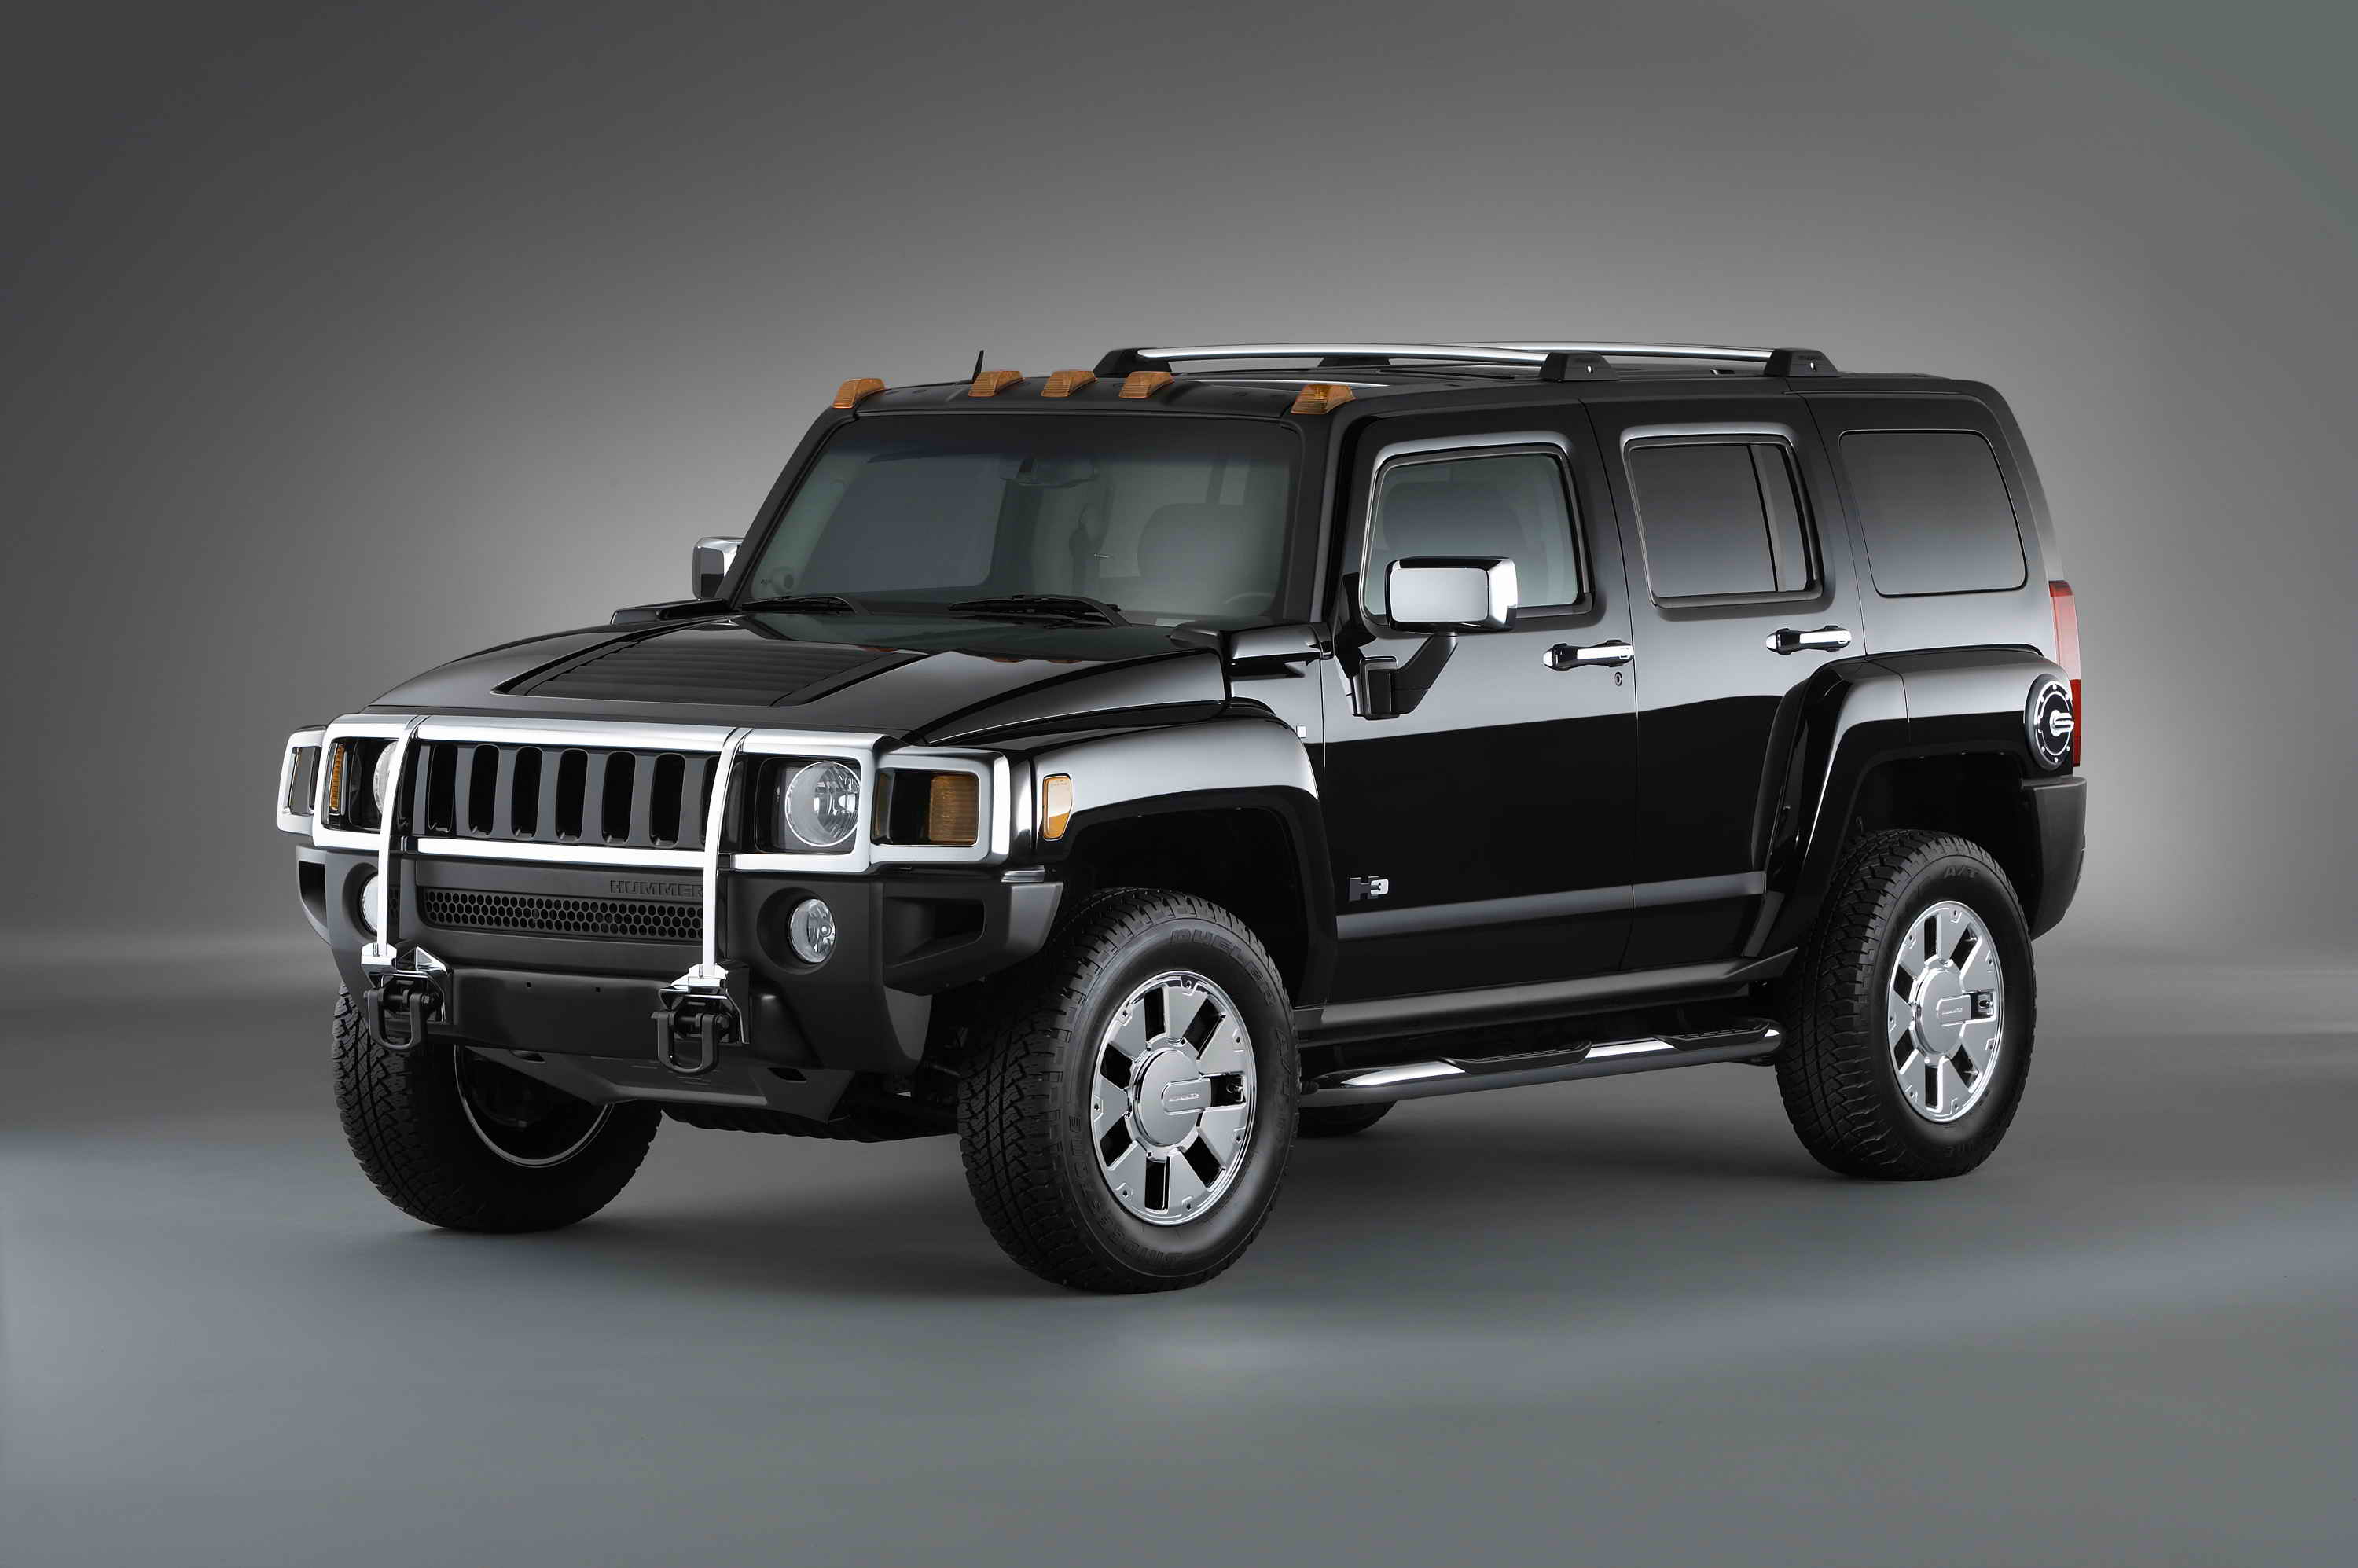 HUMMER H3 In Russia Pictures, Photos, Wallpapers. | Top Sd